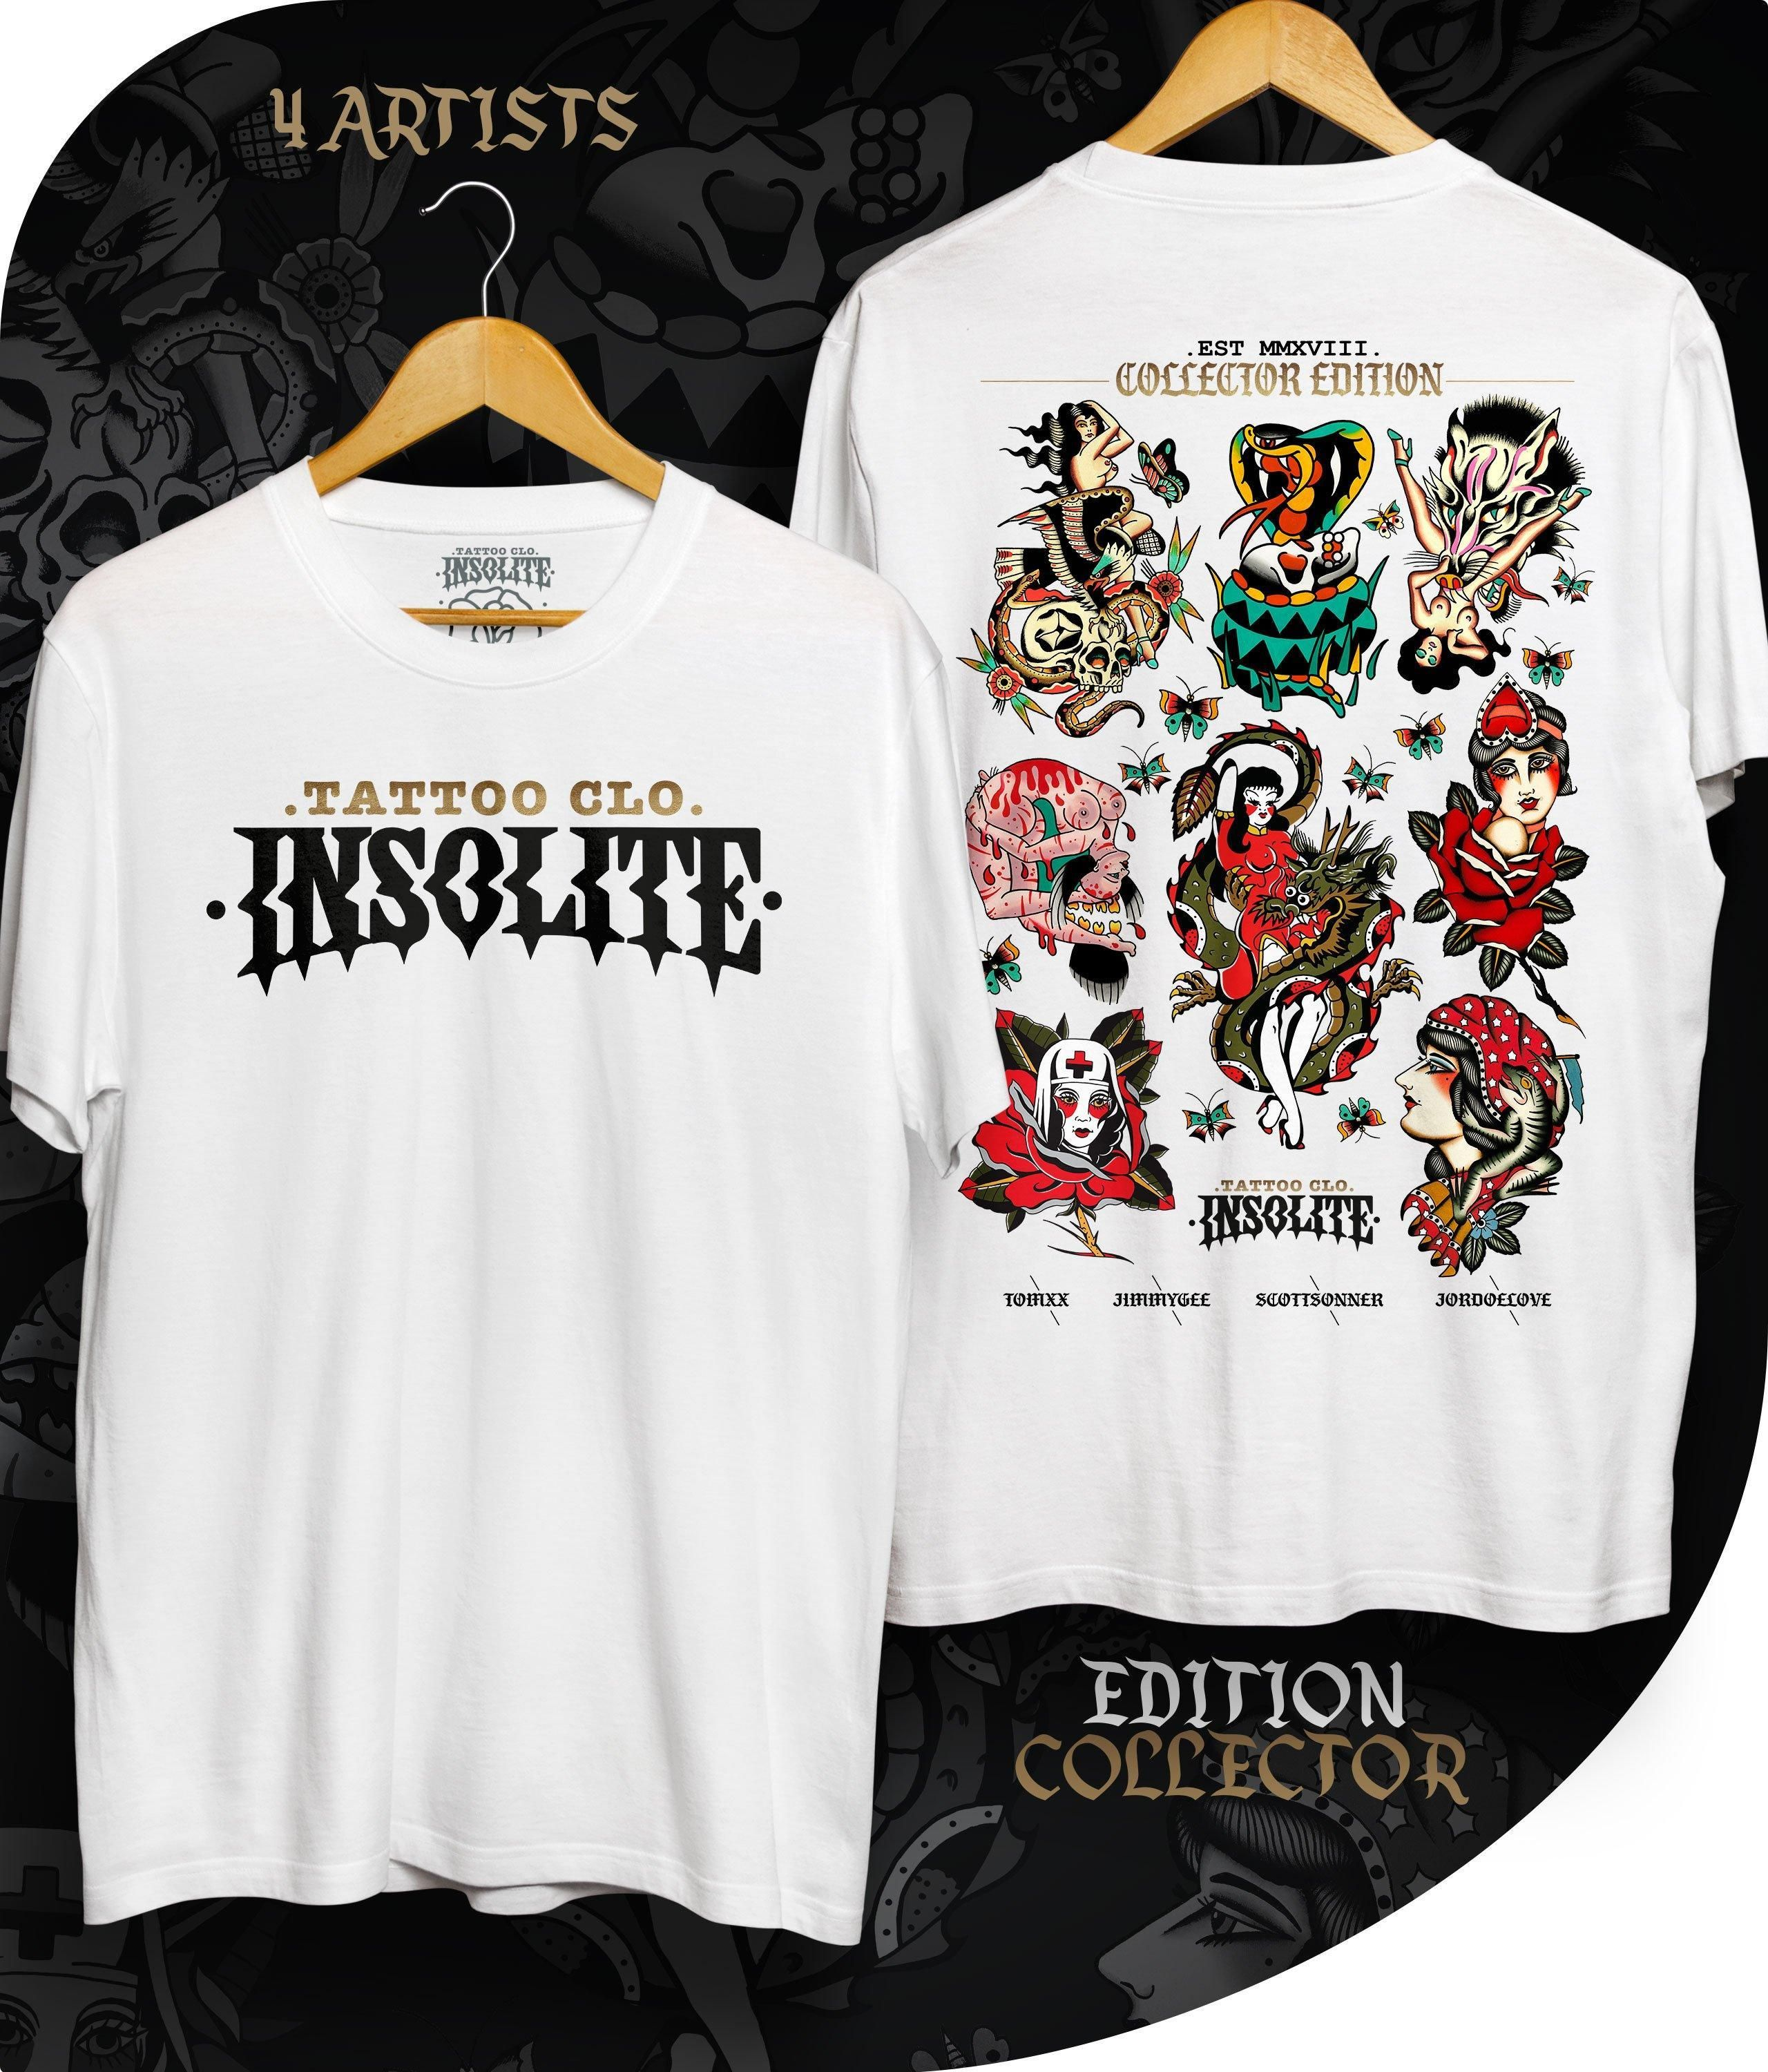 T Shirt Old School Tattoo Collector Streetwear 2019 Insolite Clothing Inspired By Tattoo T Shirt Streetwear American Tattoos Bright And Bold Kaos Desain